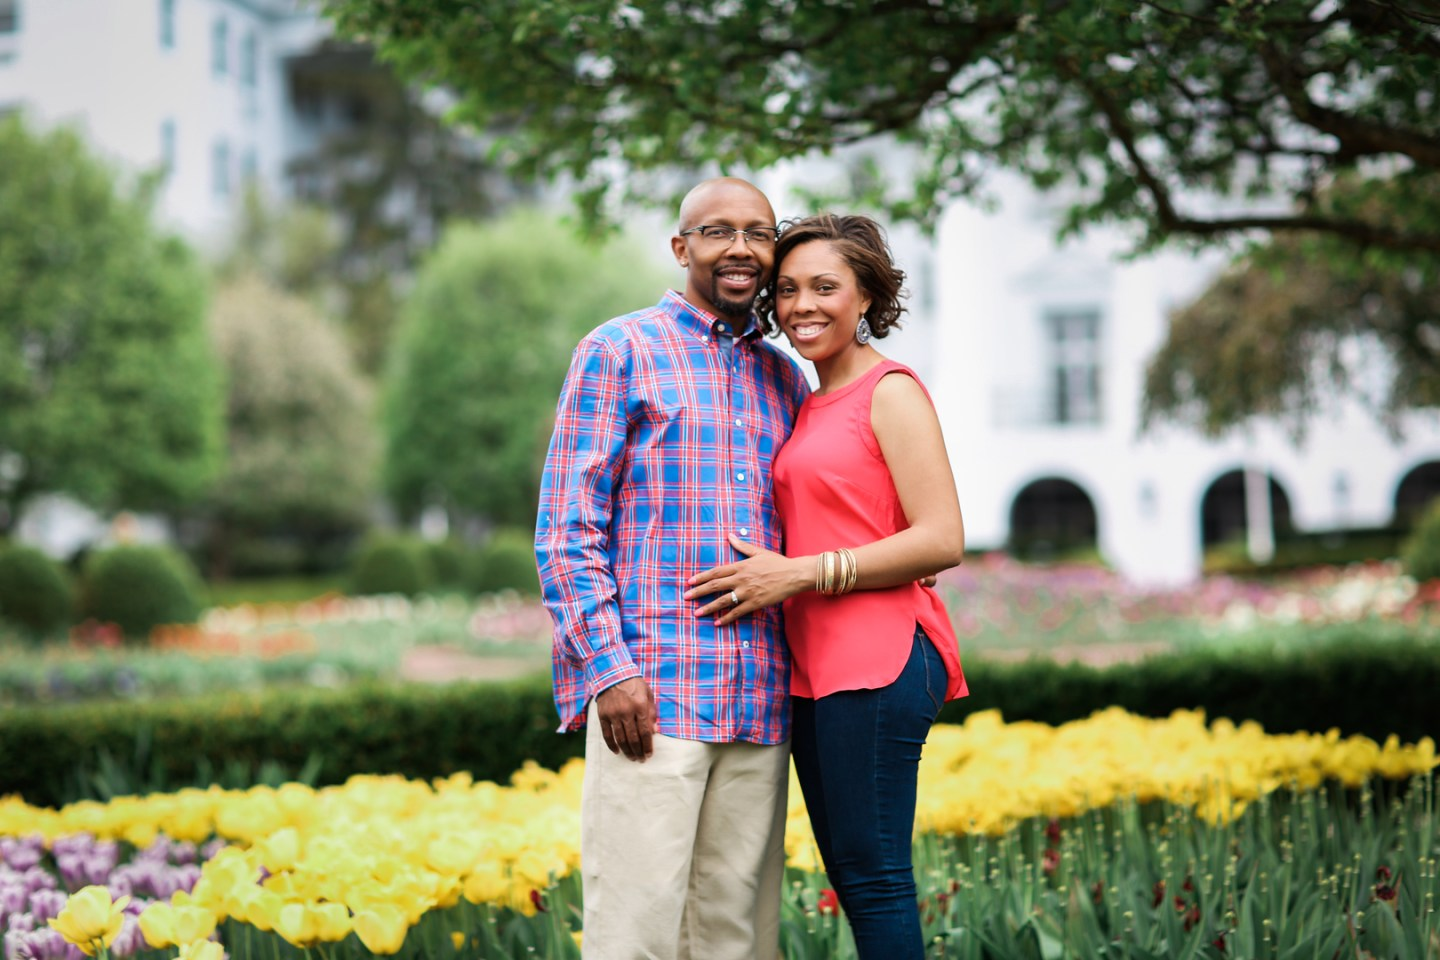 sox50arzxjpin5txg348_big West Virginia Engagement Session at the Greenbriar Resort